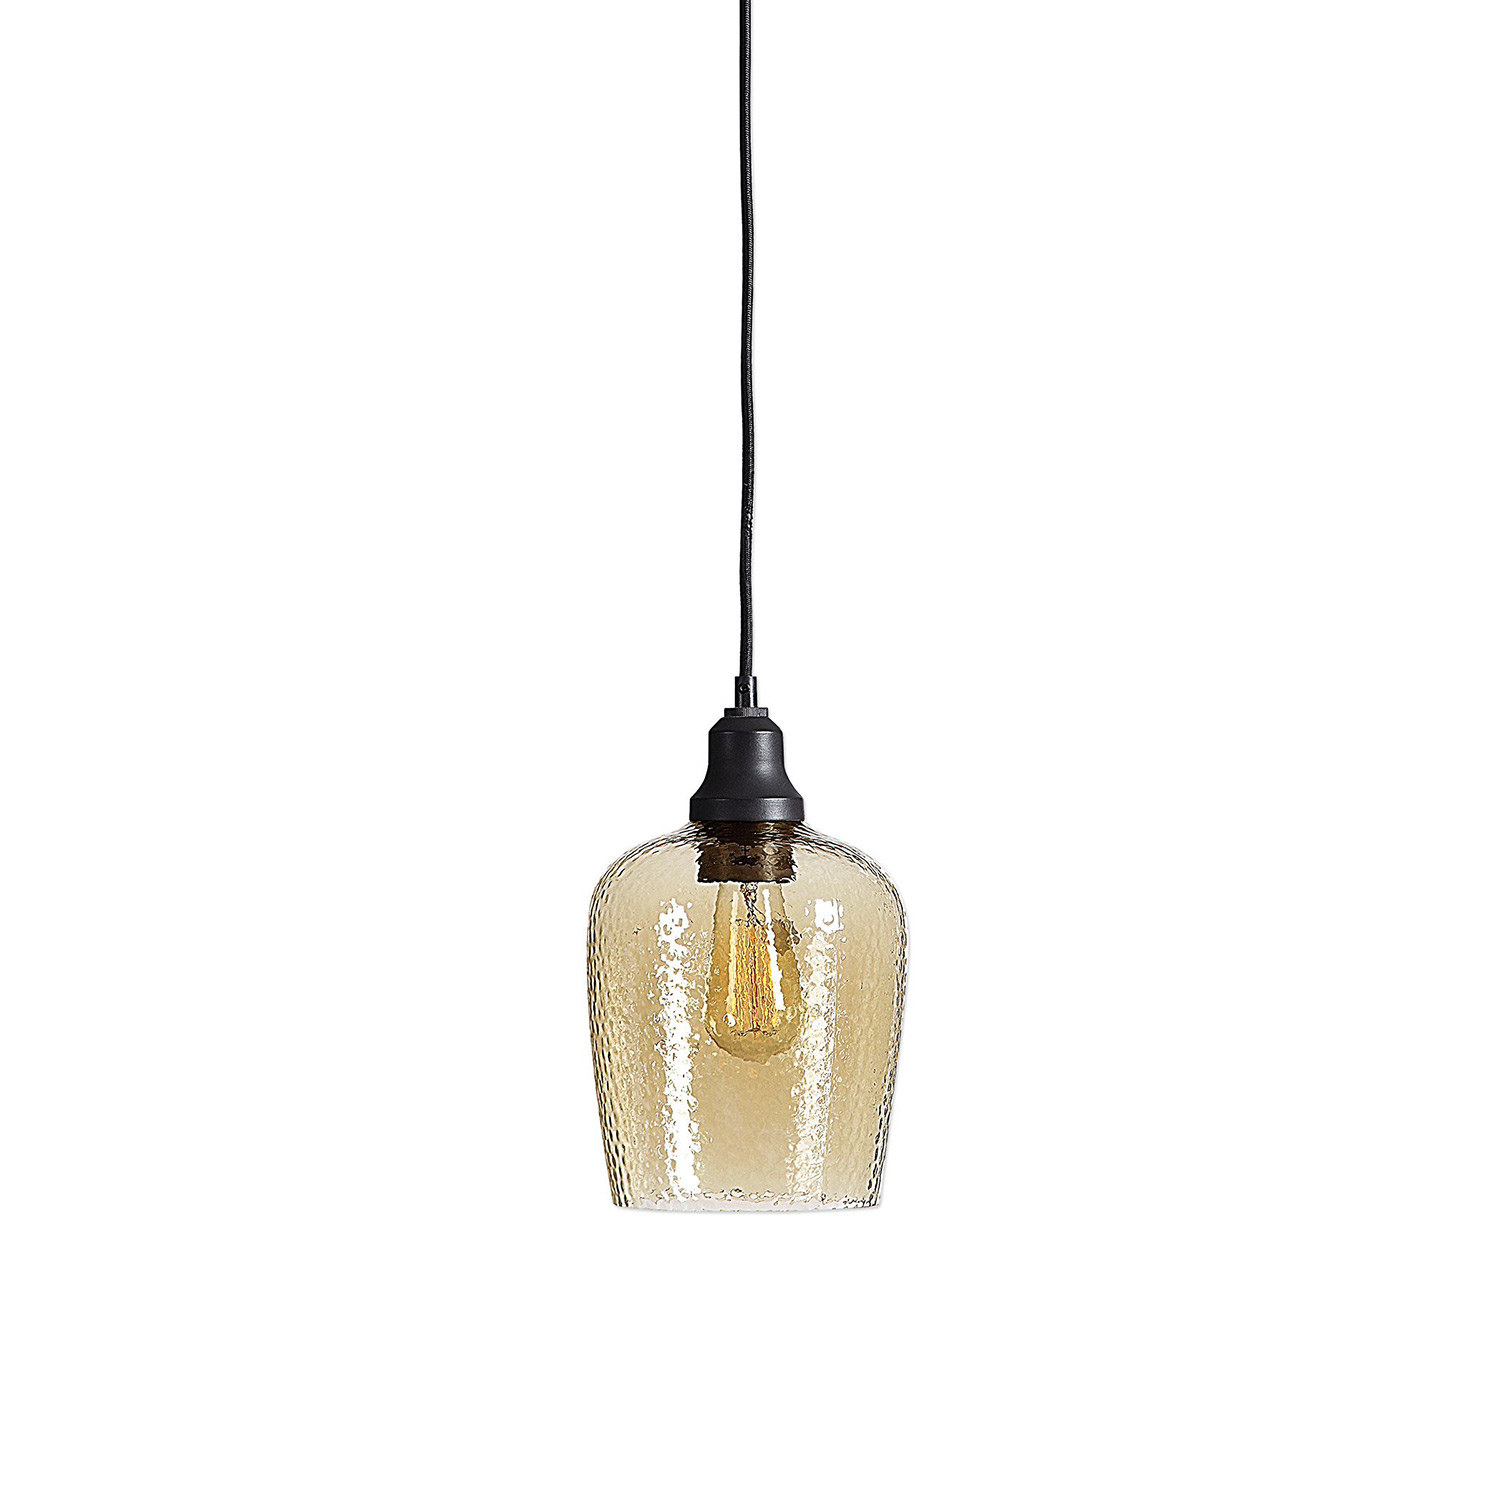 Uttermost Aarush Light Mini Pendant - Amber Glass